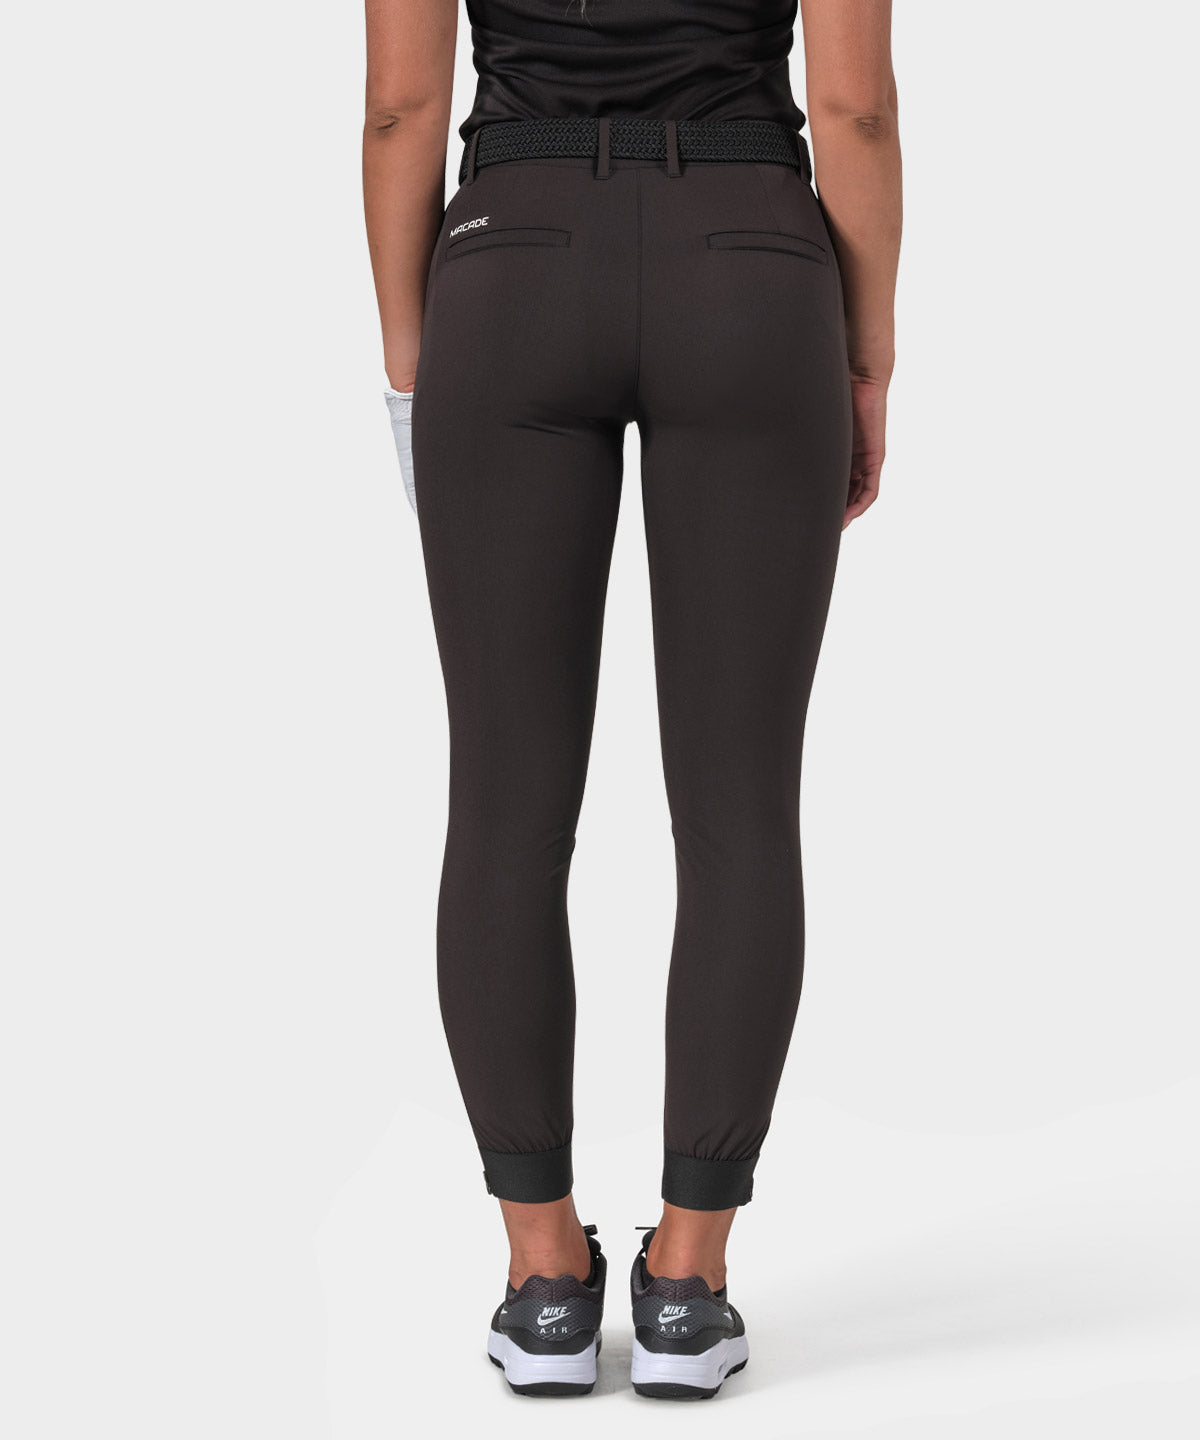 Charcoal Four-Way Stretch Jogger